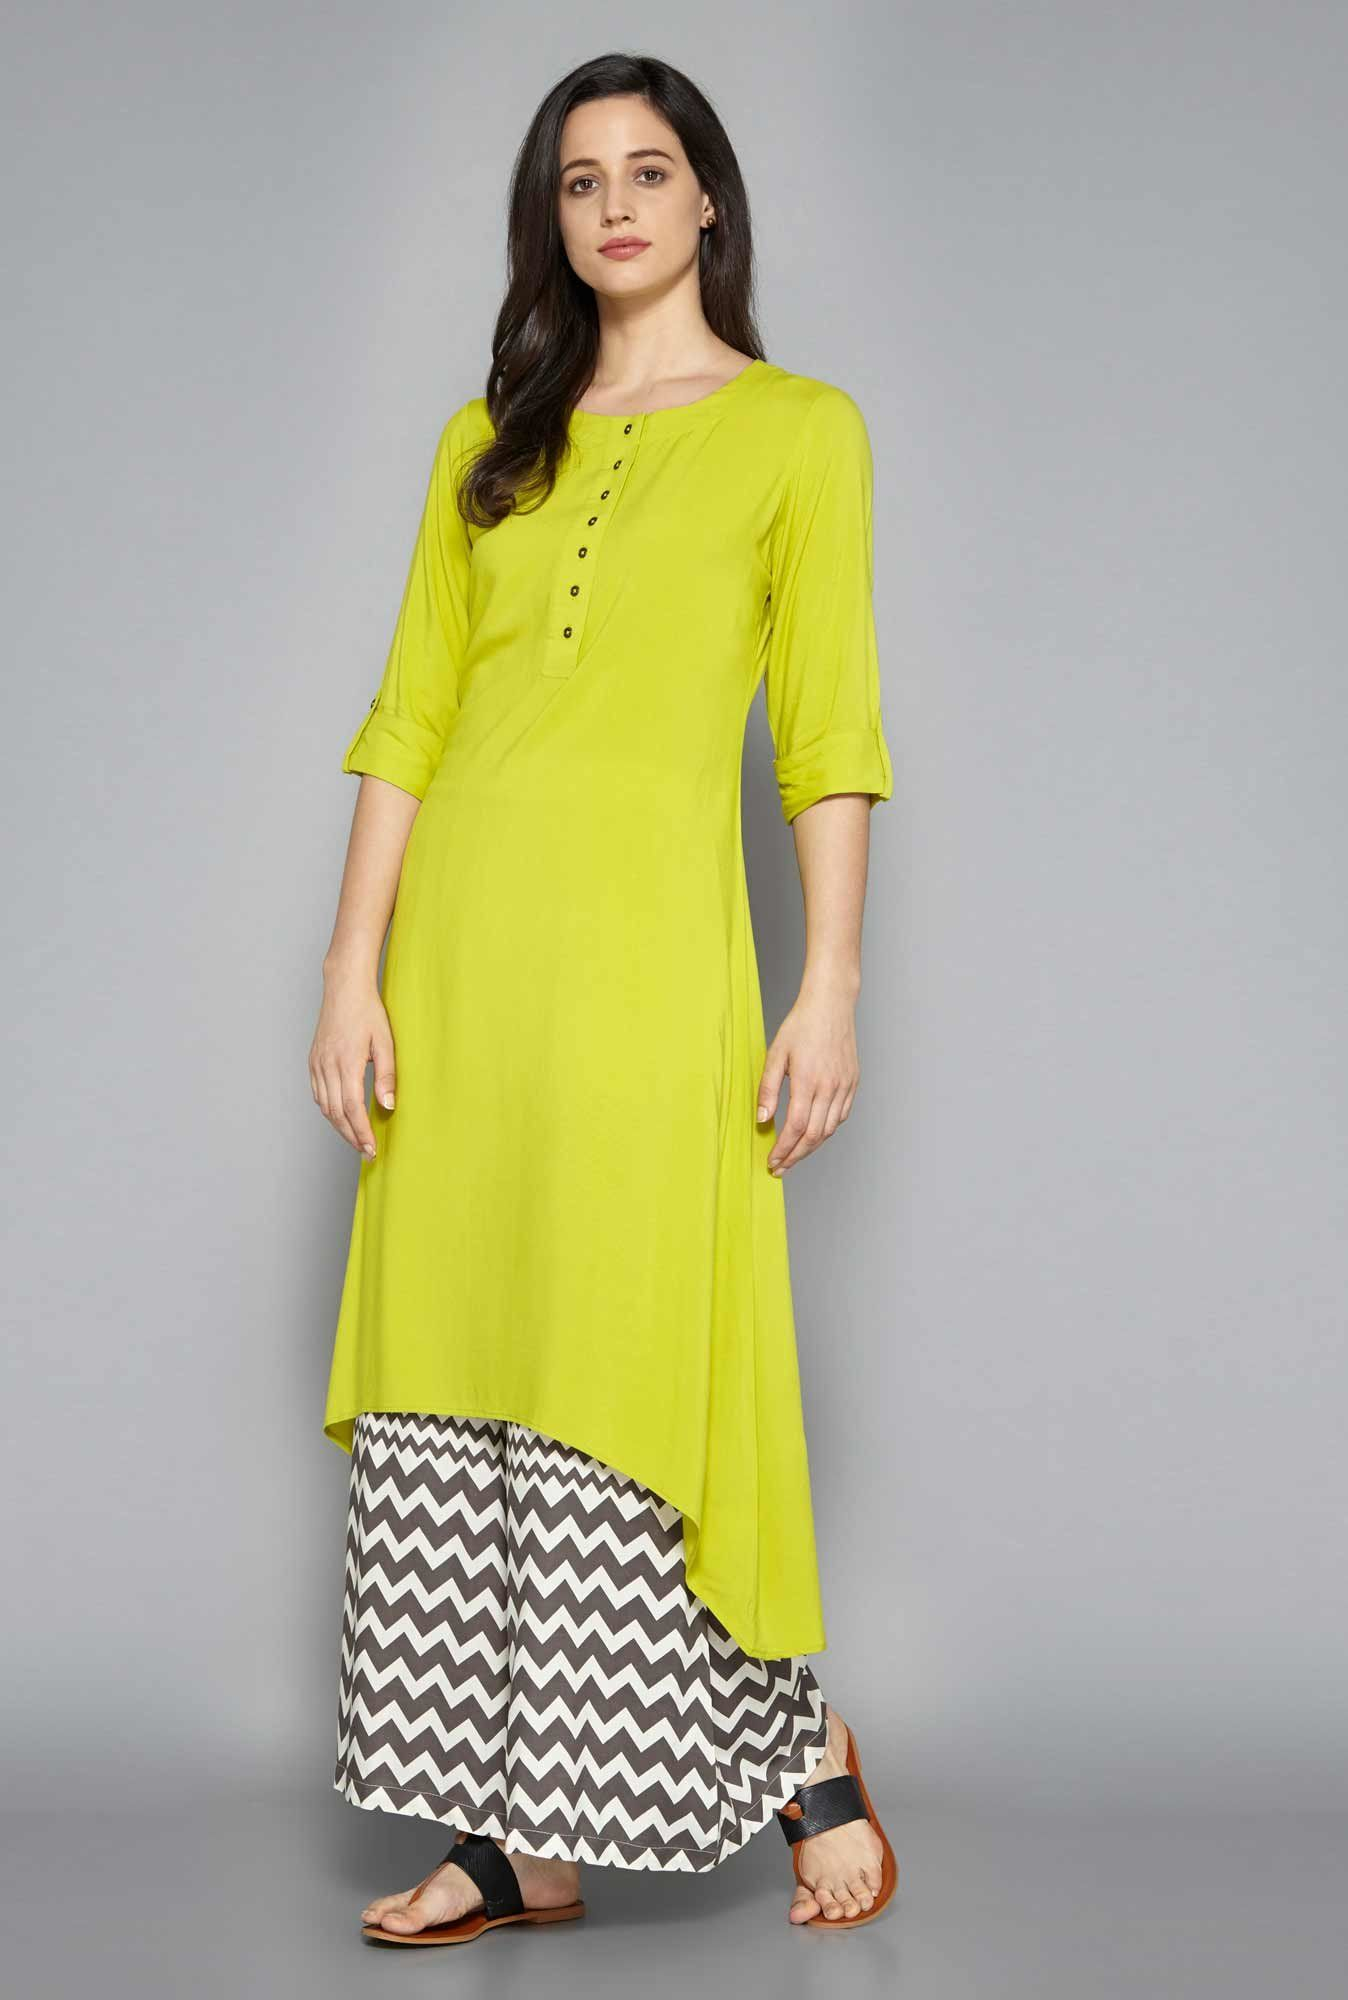 1cfd82d1c6848 New Indian Bollywood designer kurti Women Ethnic Party wear Dress  Pakistani. Utsa by Westside Lime Green Kurta